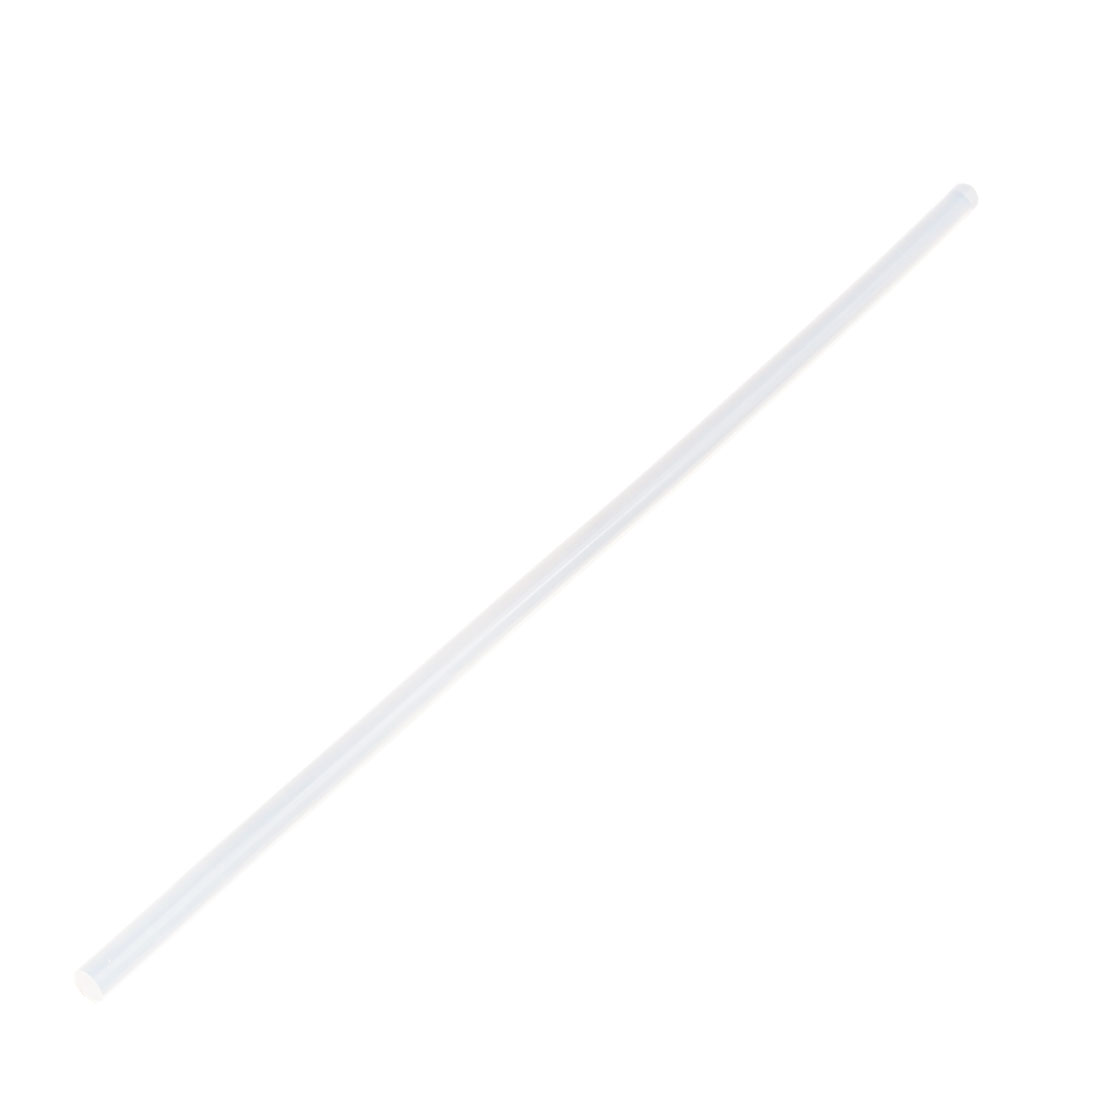 7mm x 300mm Hot Melt Glue Adhesive Stick Clear for Electric Tool Heating Gun